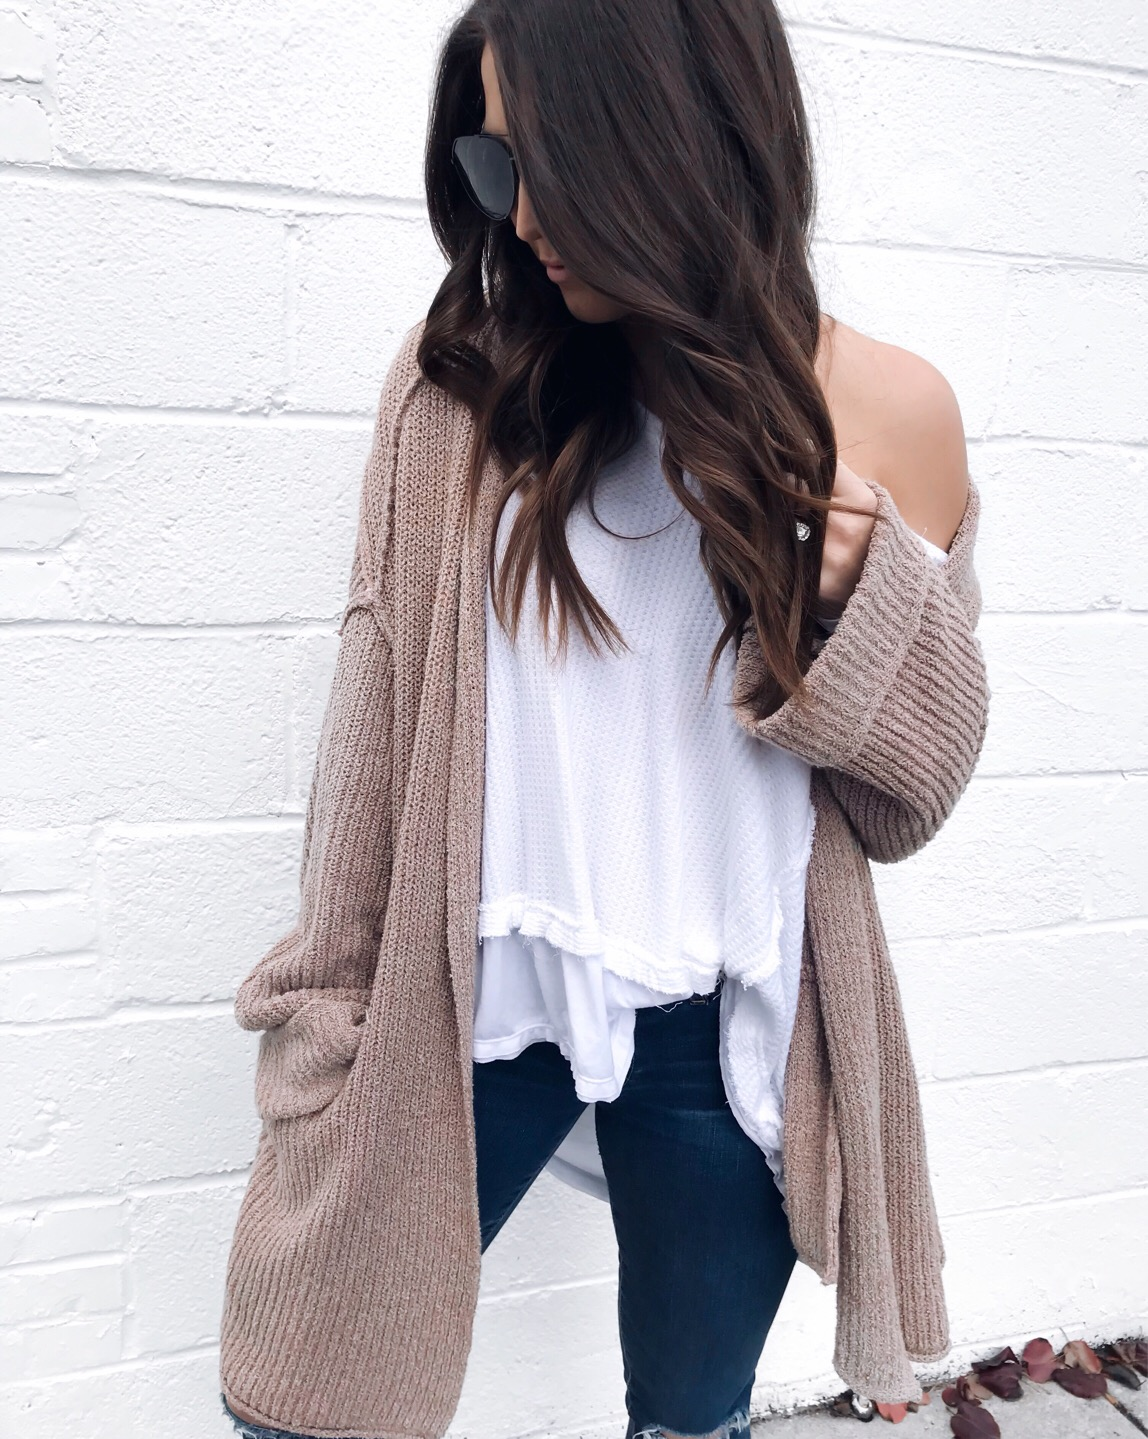 My Outfits On Sale | Pine Barren Beauty | free people outfit idea, fall outfit idea, winter outfit idea, cozy cardigan, Black Friday sales